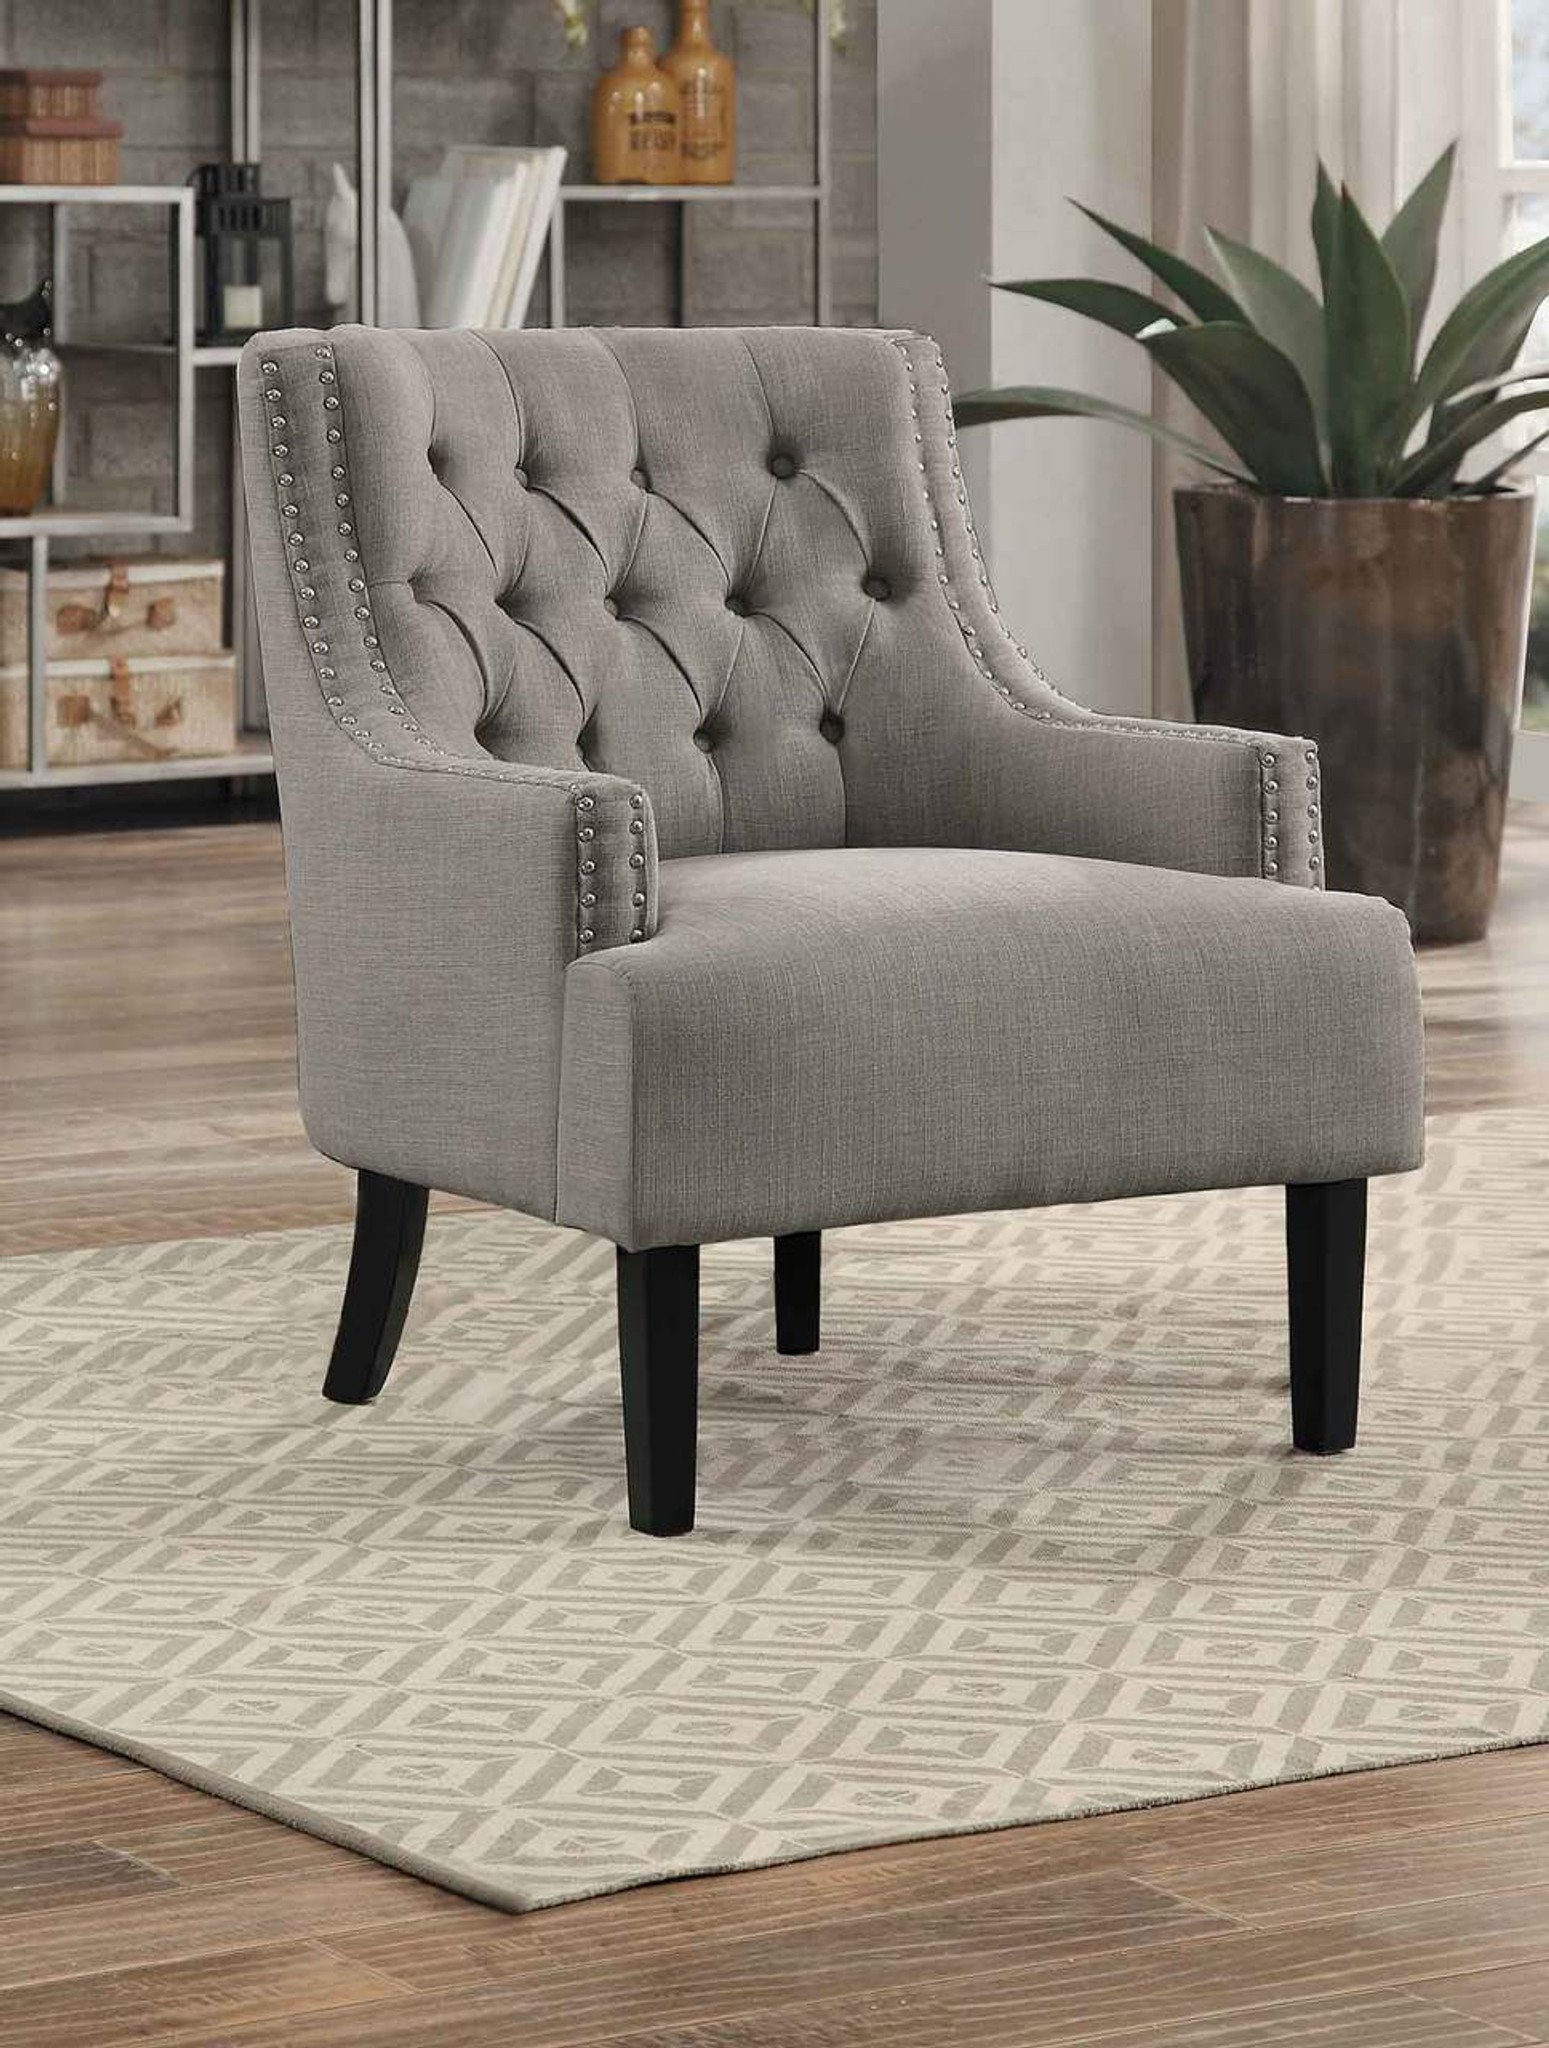 Awe Inspiring Charisma Accent Chair Taupe Creativecarmelina Interior Chair Design Creativecarmelinacom